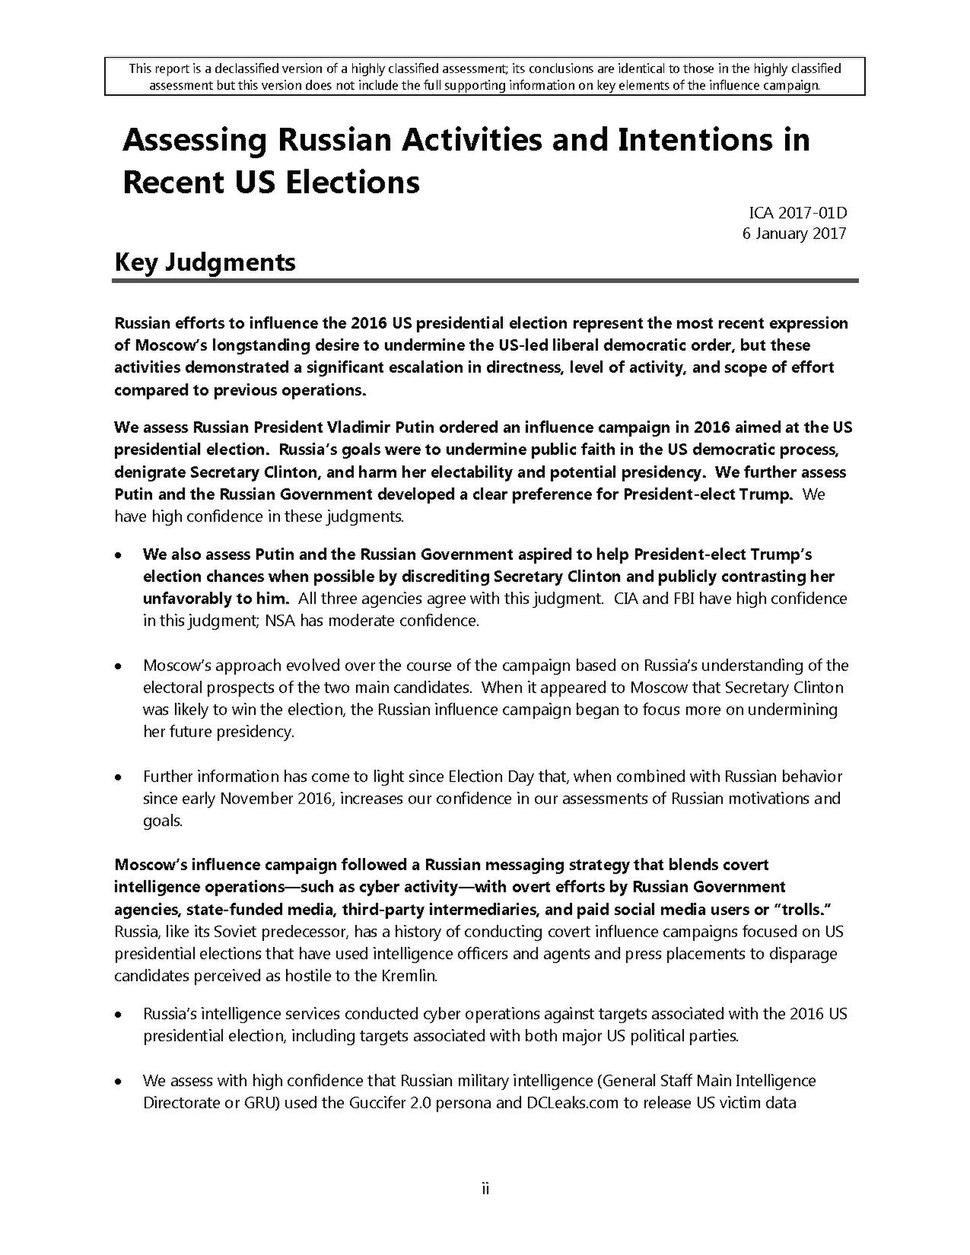 Intelligence Community Assessment - Assessing Russian Activities and Intentions in Recent US Elections.pdf&page=7